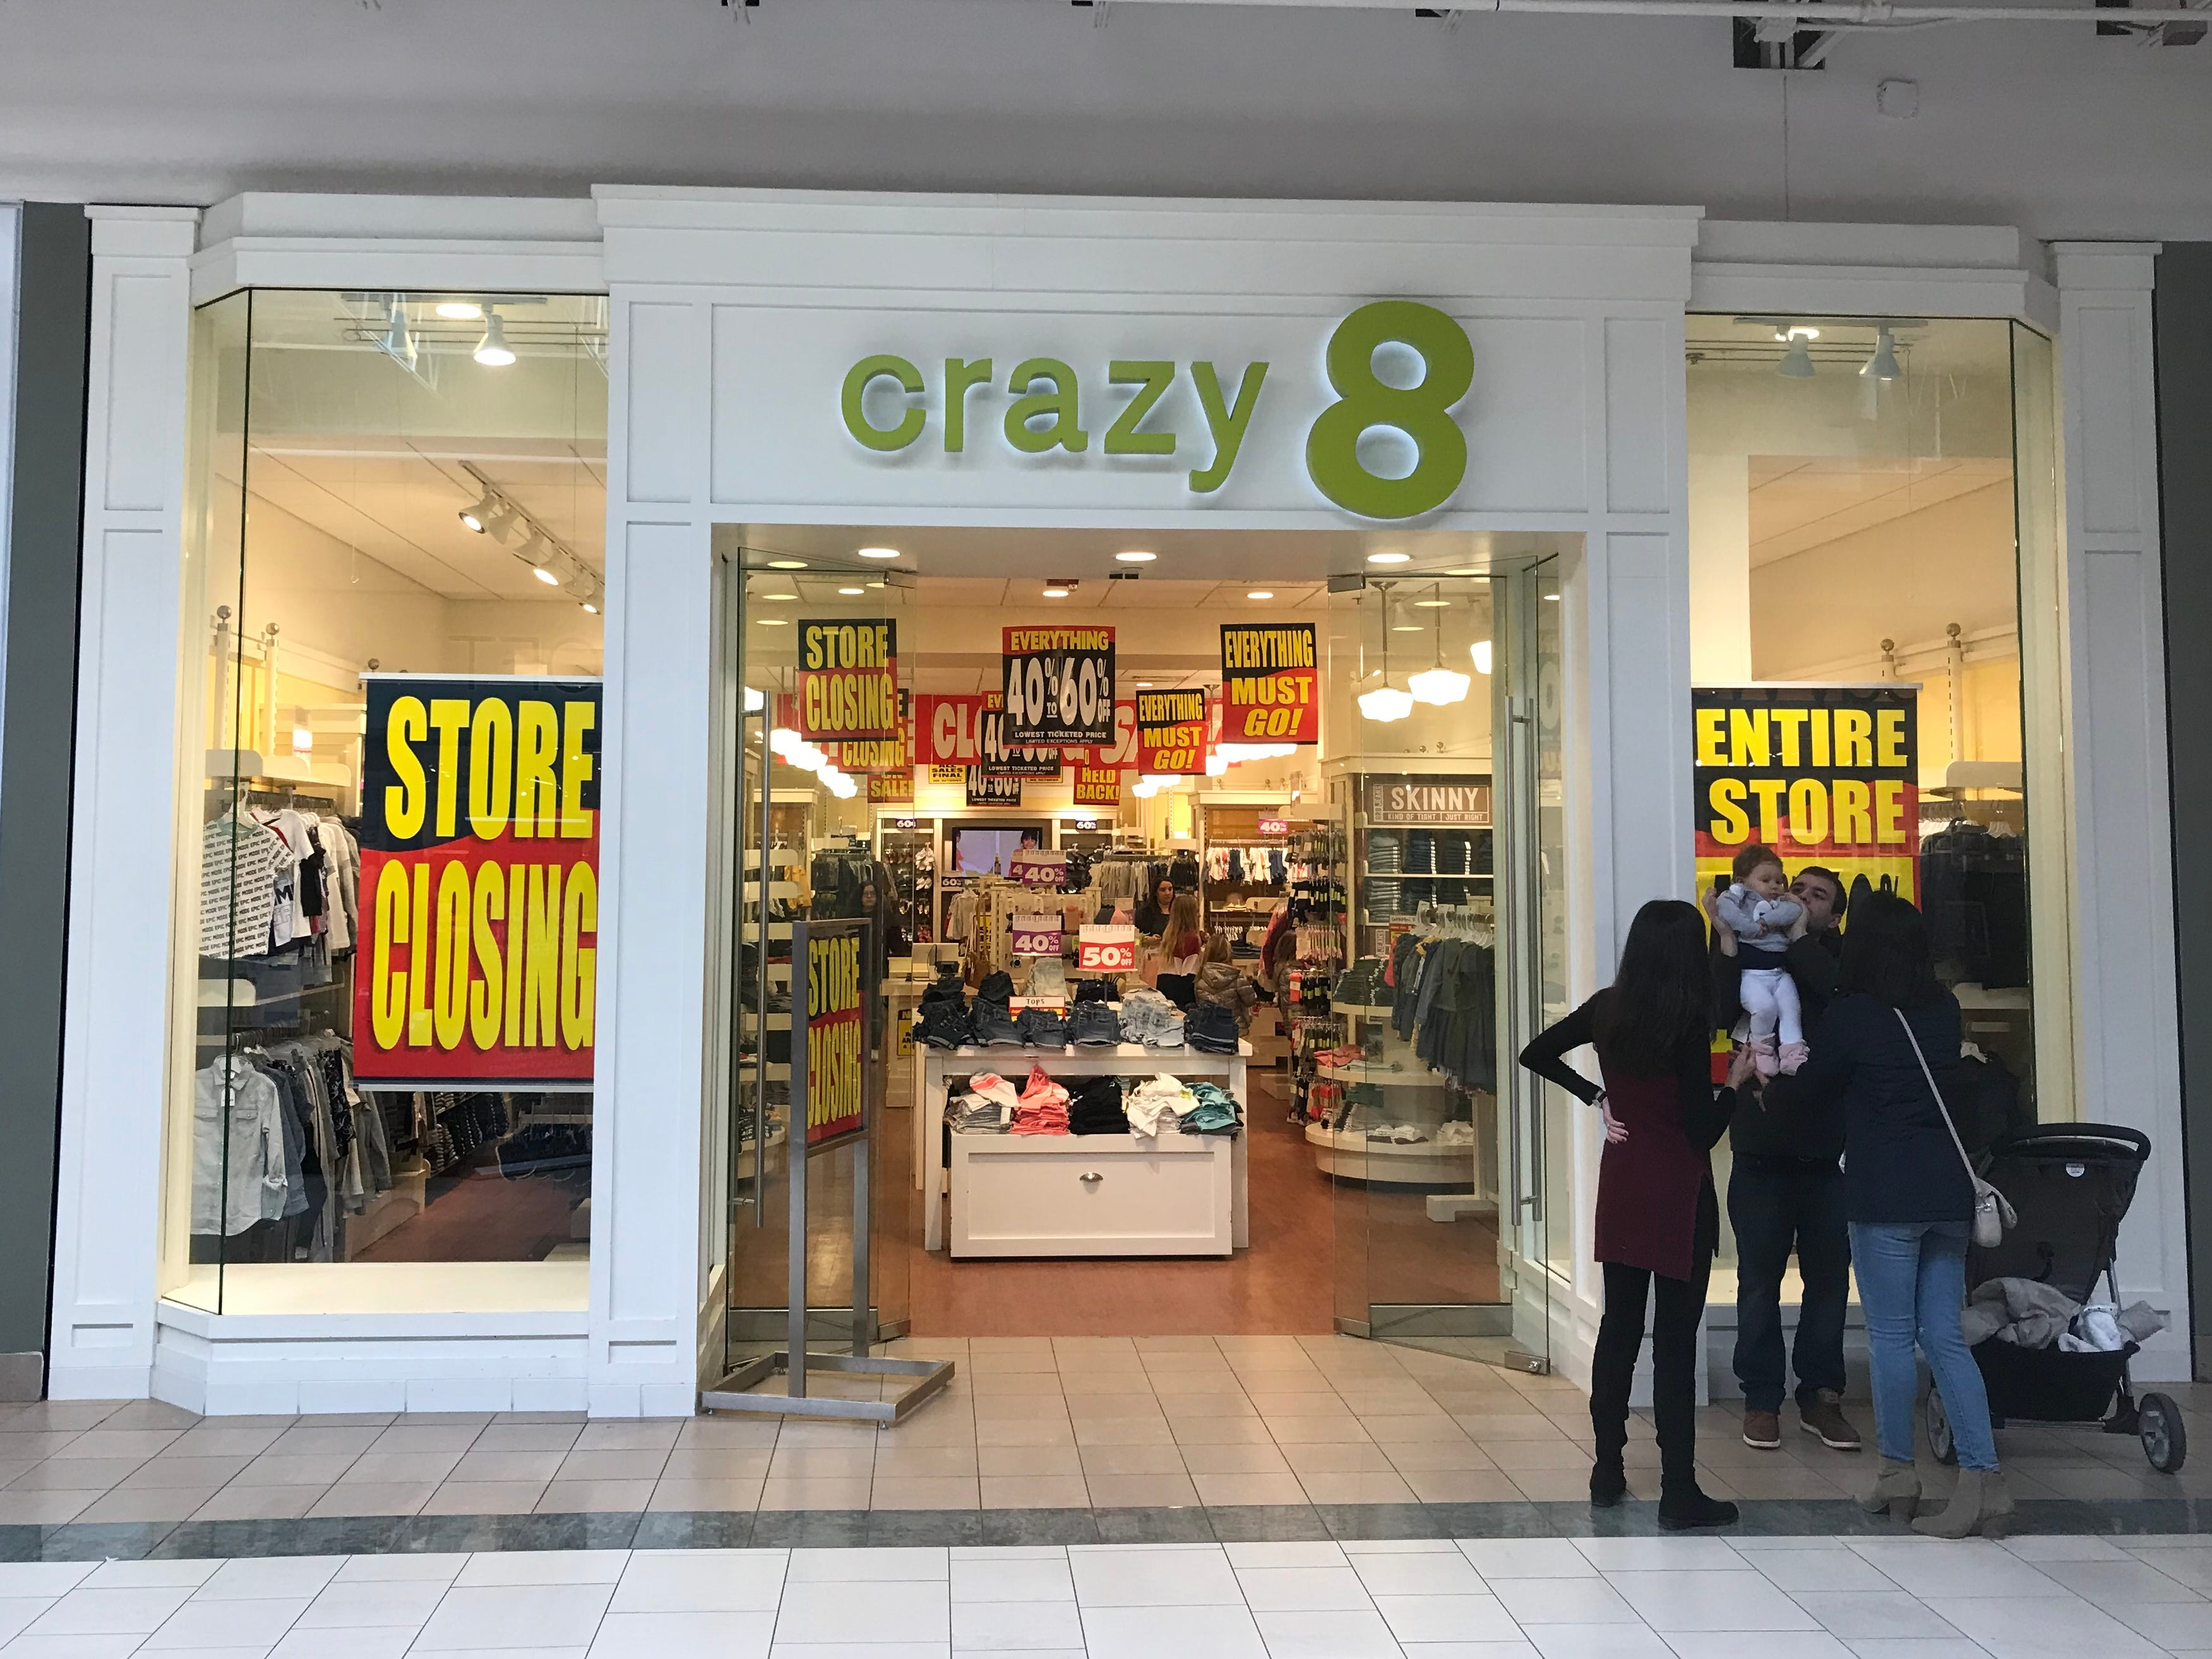 The Crazy 8 store in Bay Park Square will close due to the bankruptcy of its parent company Gymboree Group.